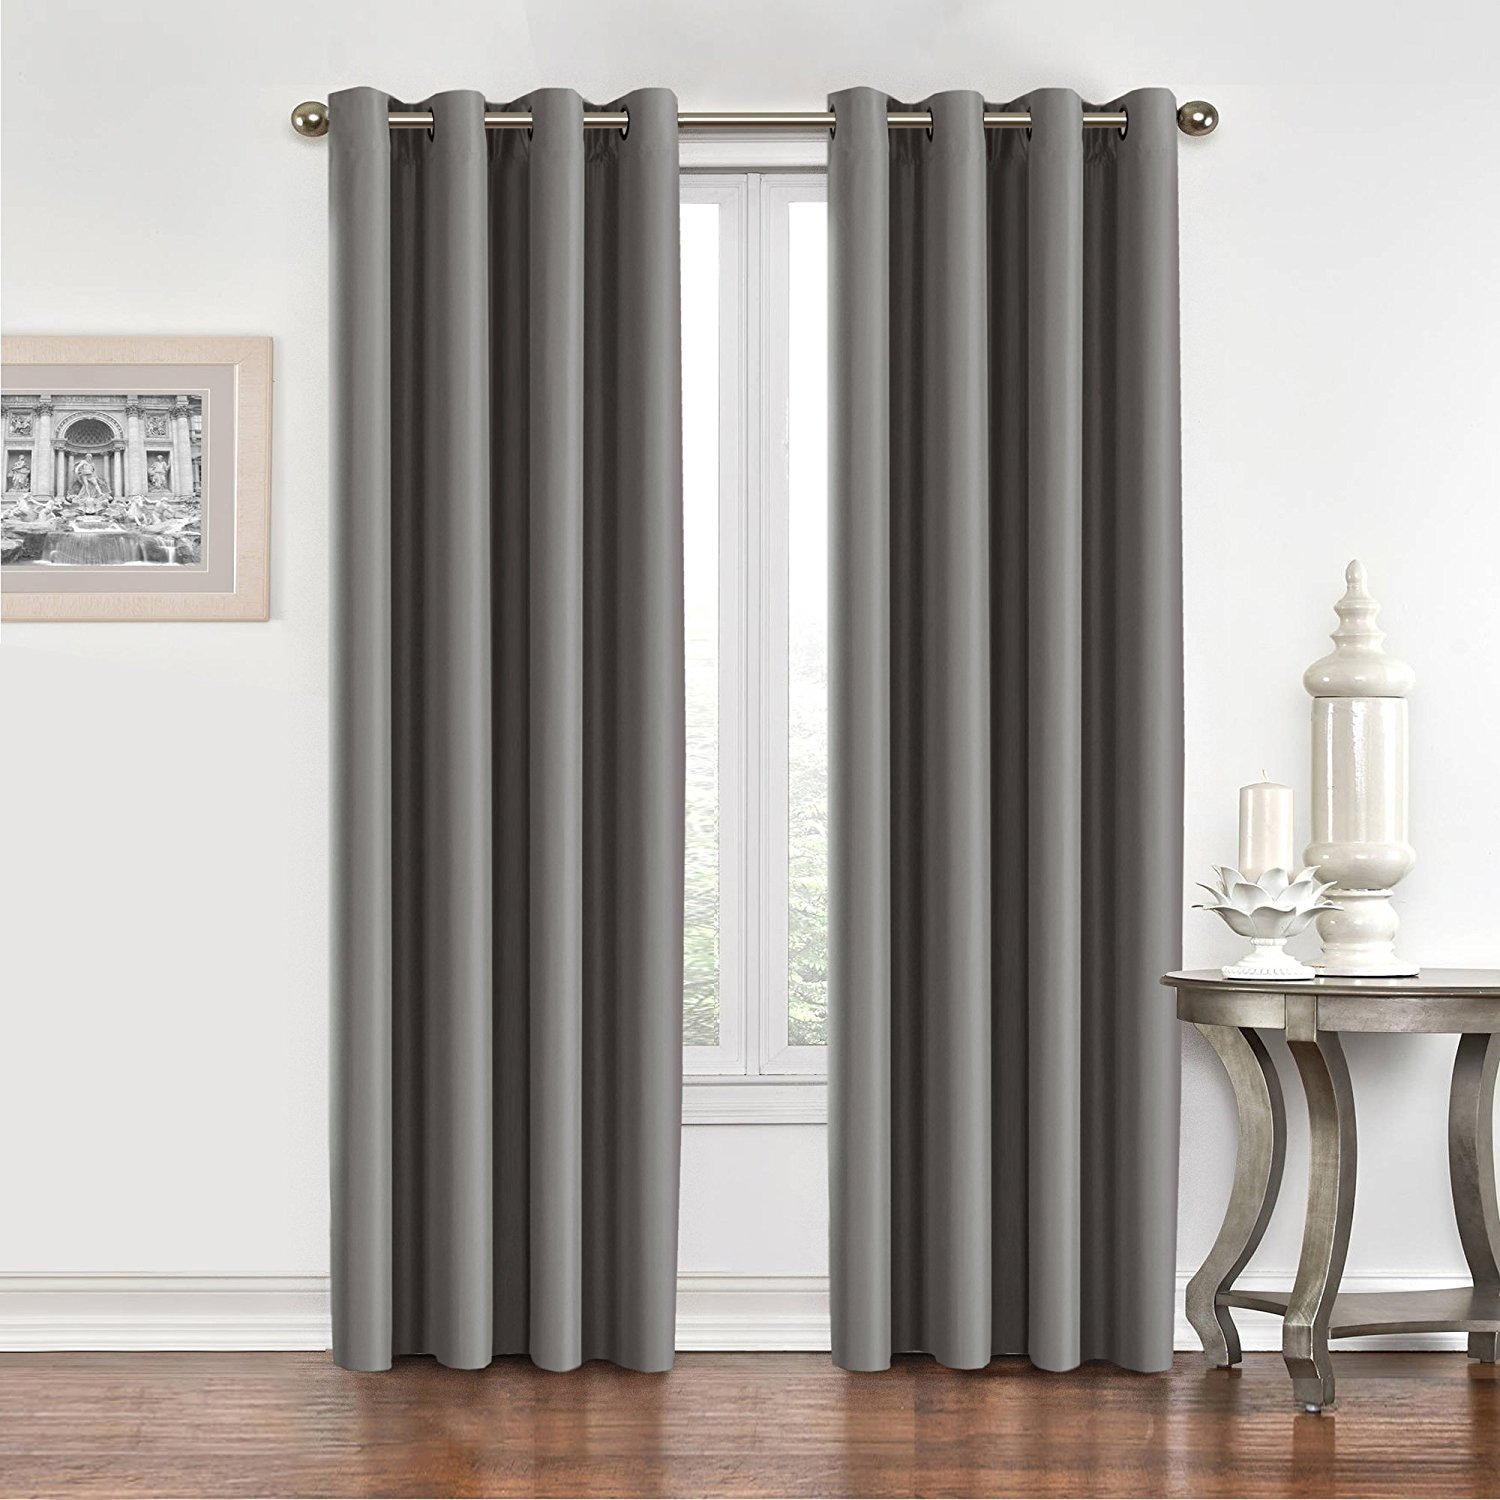 online bamboo curtains vertical ideas window design blinds custom windows blind vinyl plantation shutters decoration large outstanding wood cornice and inch for curtain